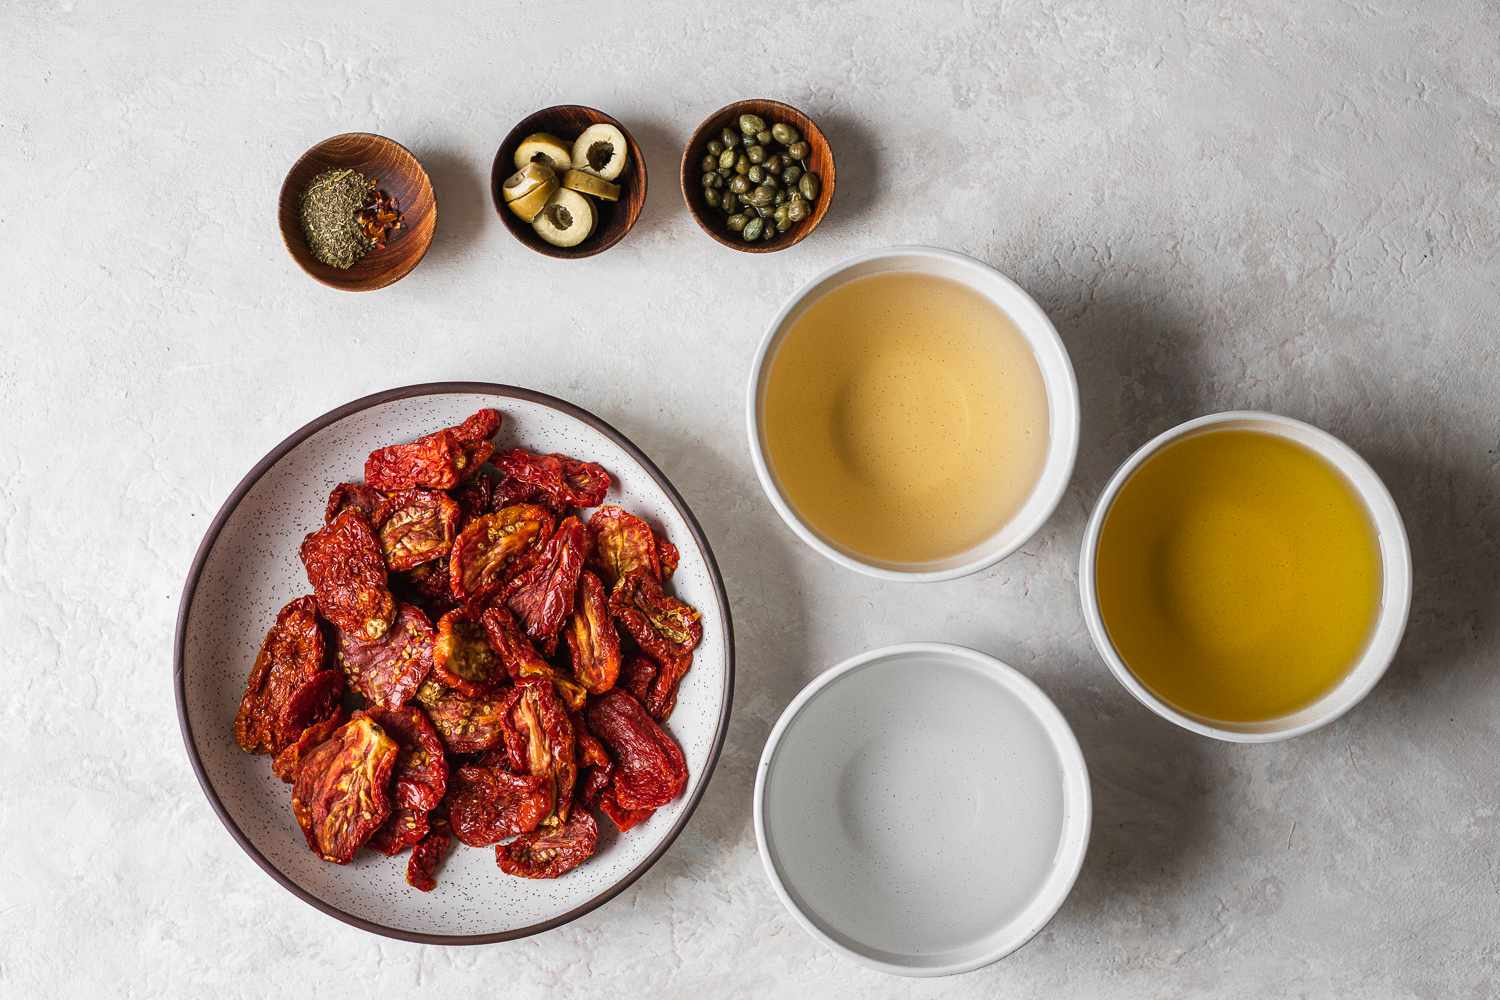 Sun-Dried Tomatoes in Olive Oil ingredients